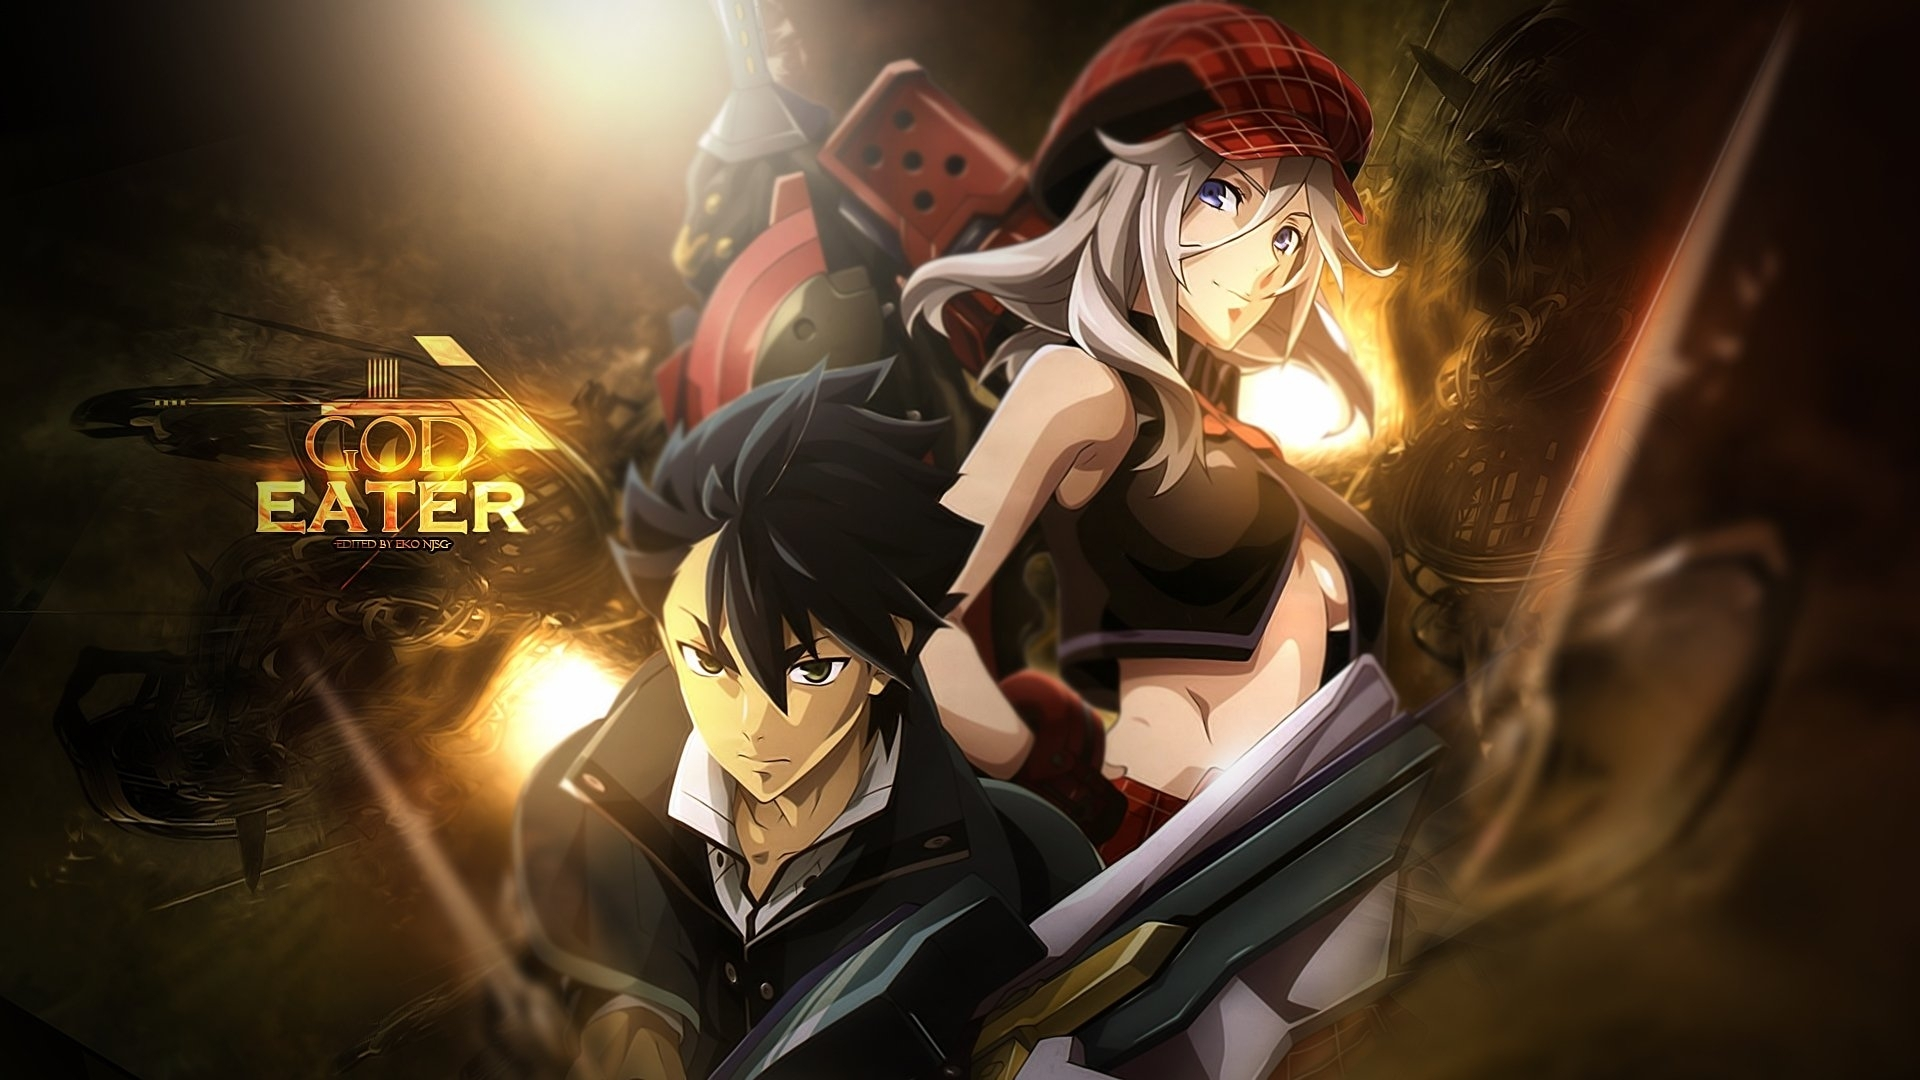 45 god eater hd wallpapers | background images - wallpaper abyss